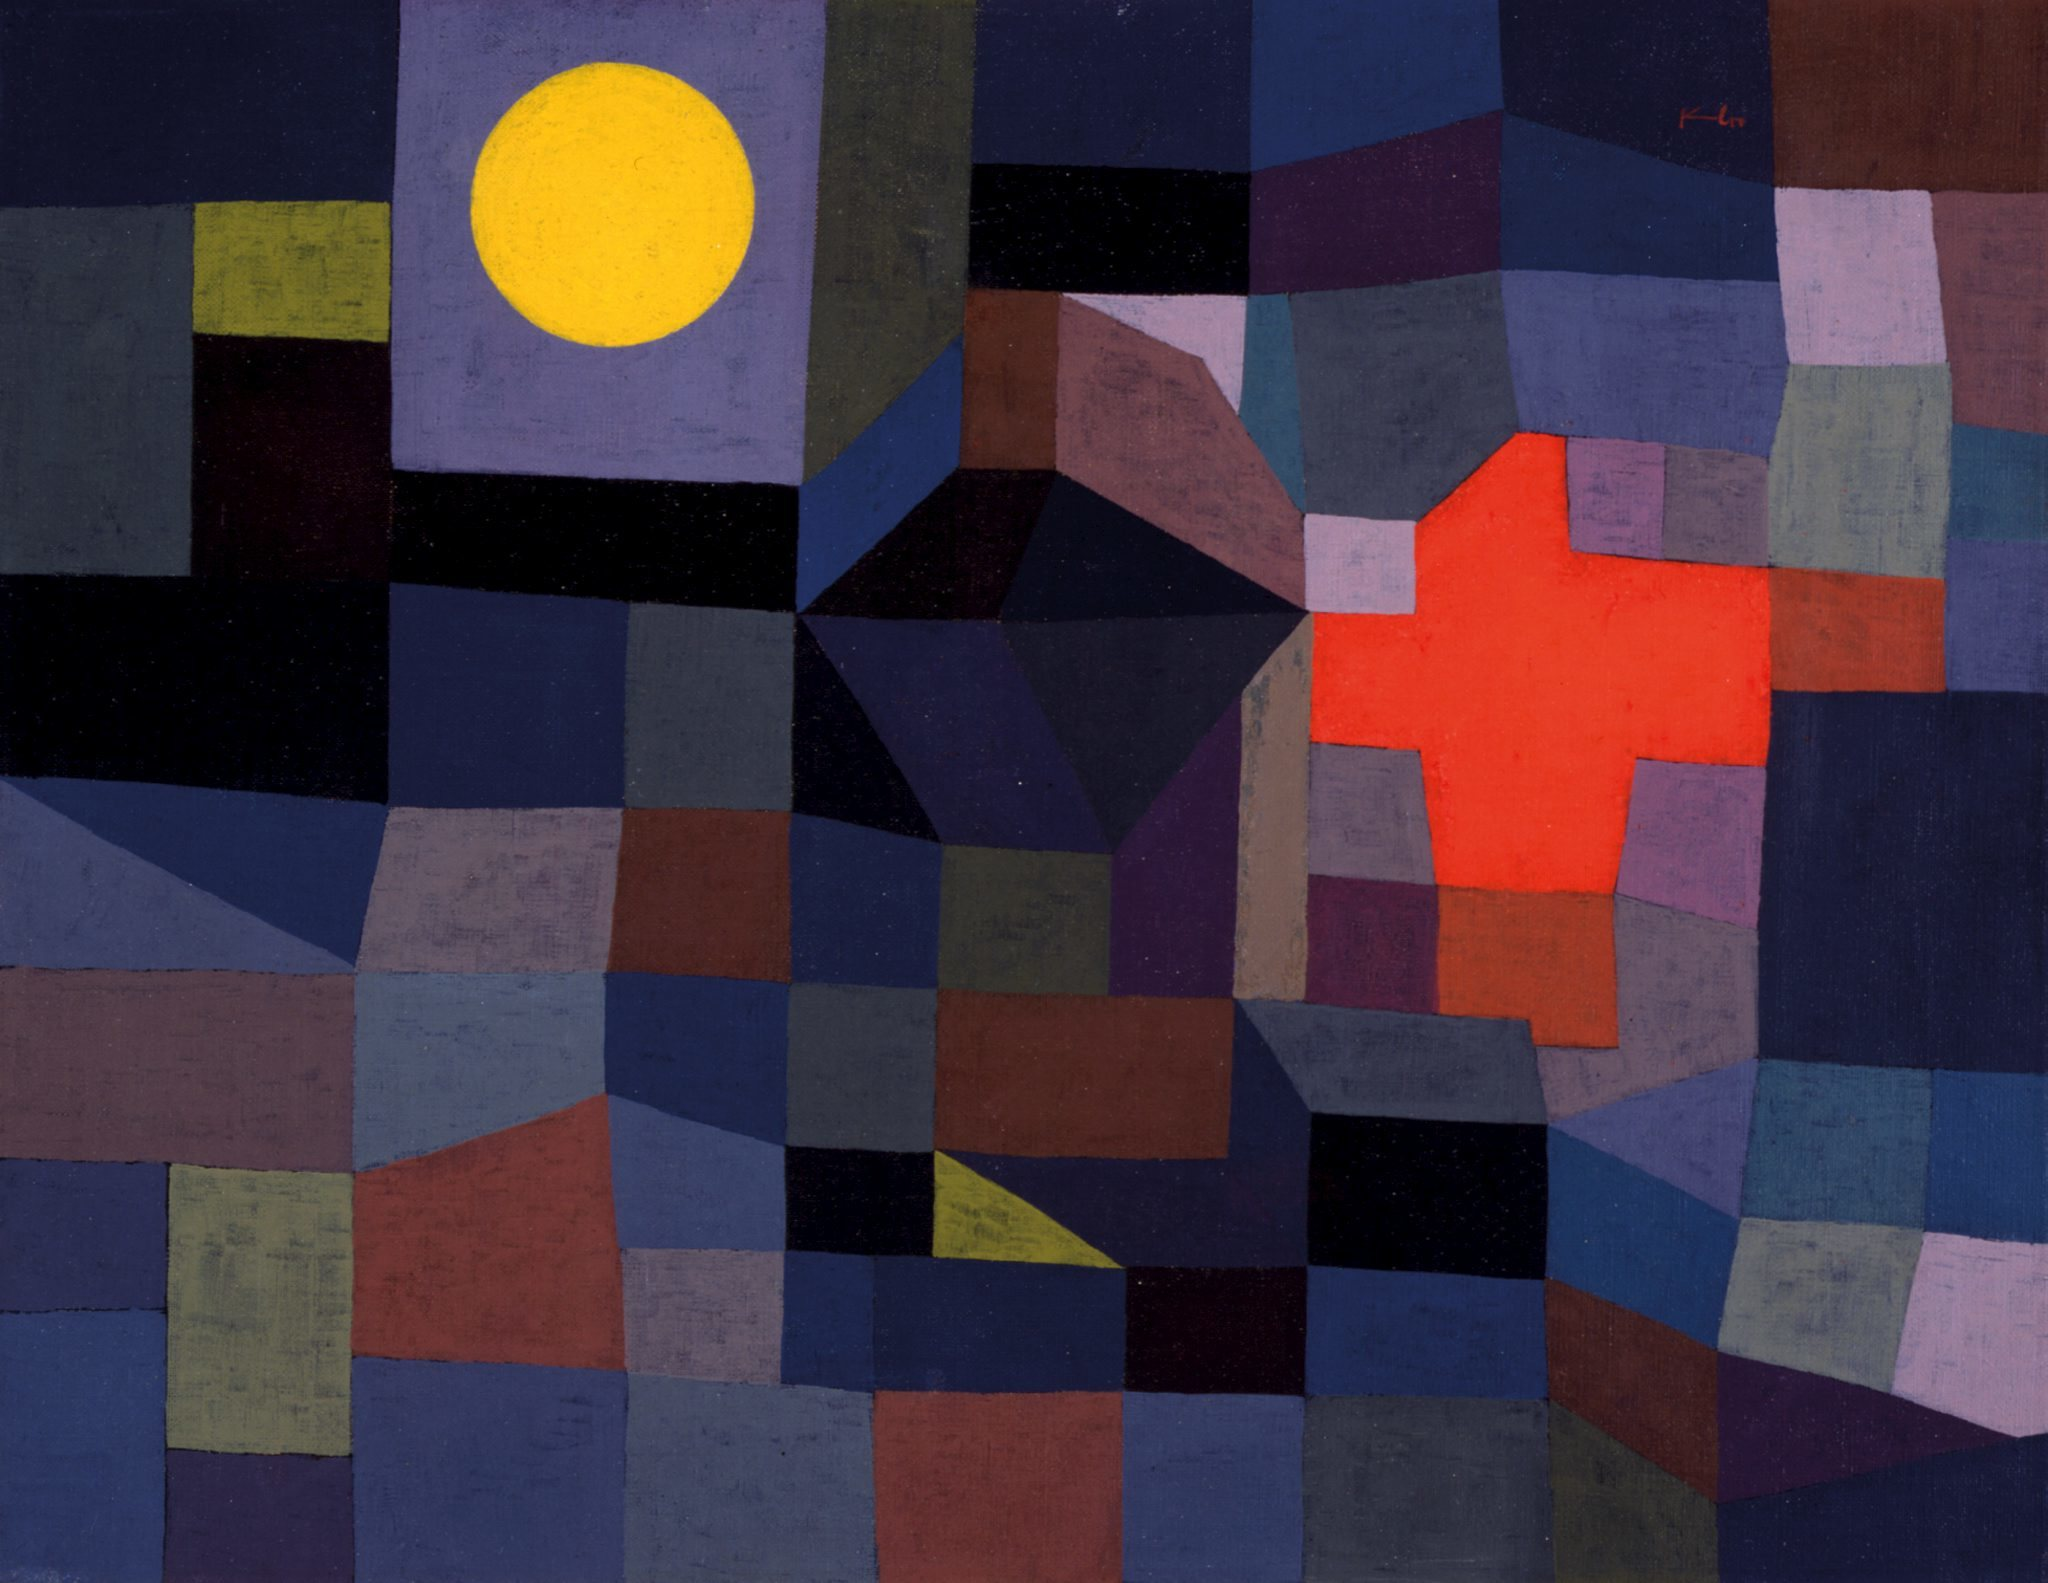 Paul Klee, 'Fire at Full Moon', 1933